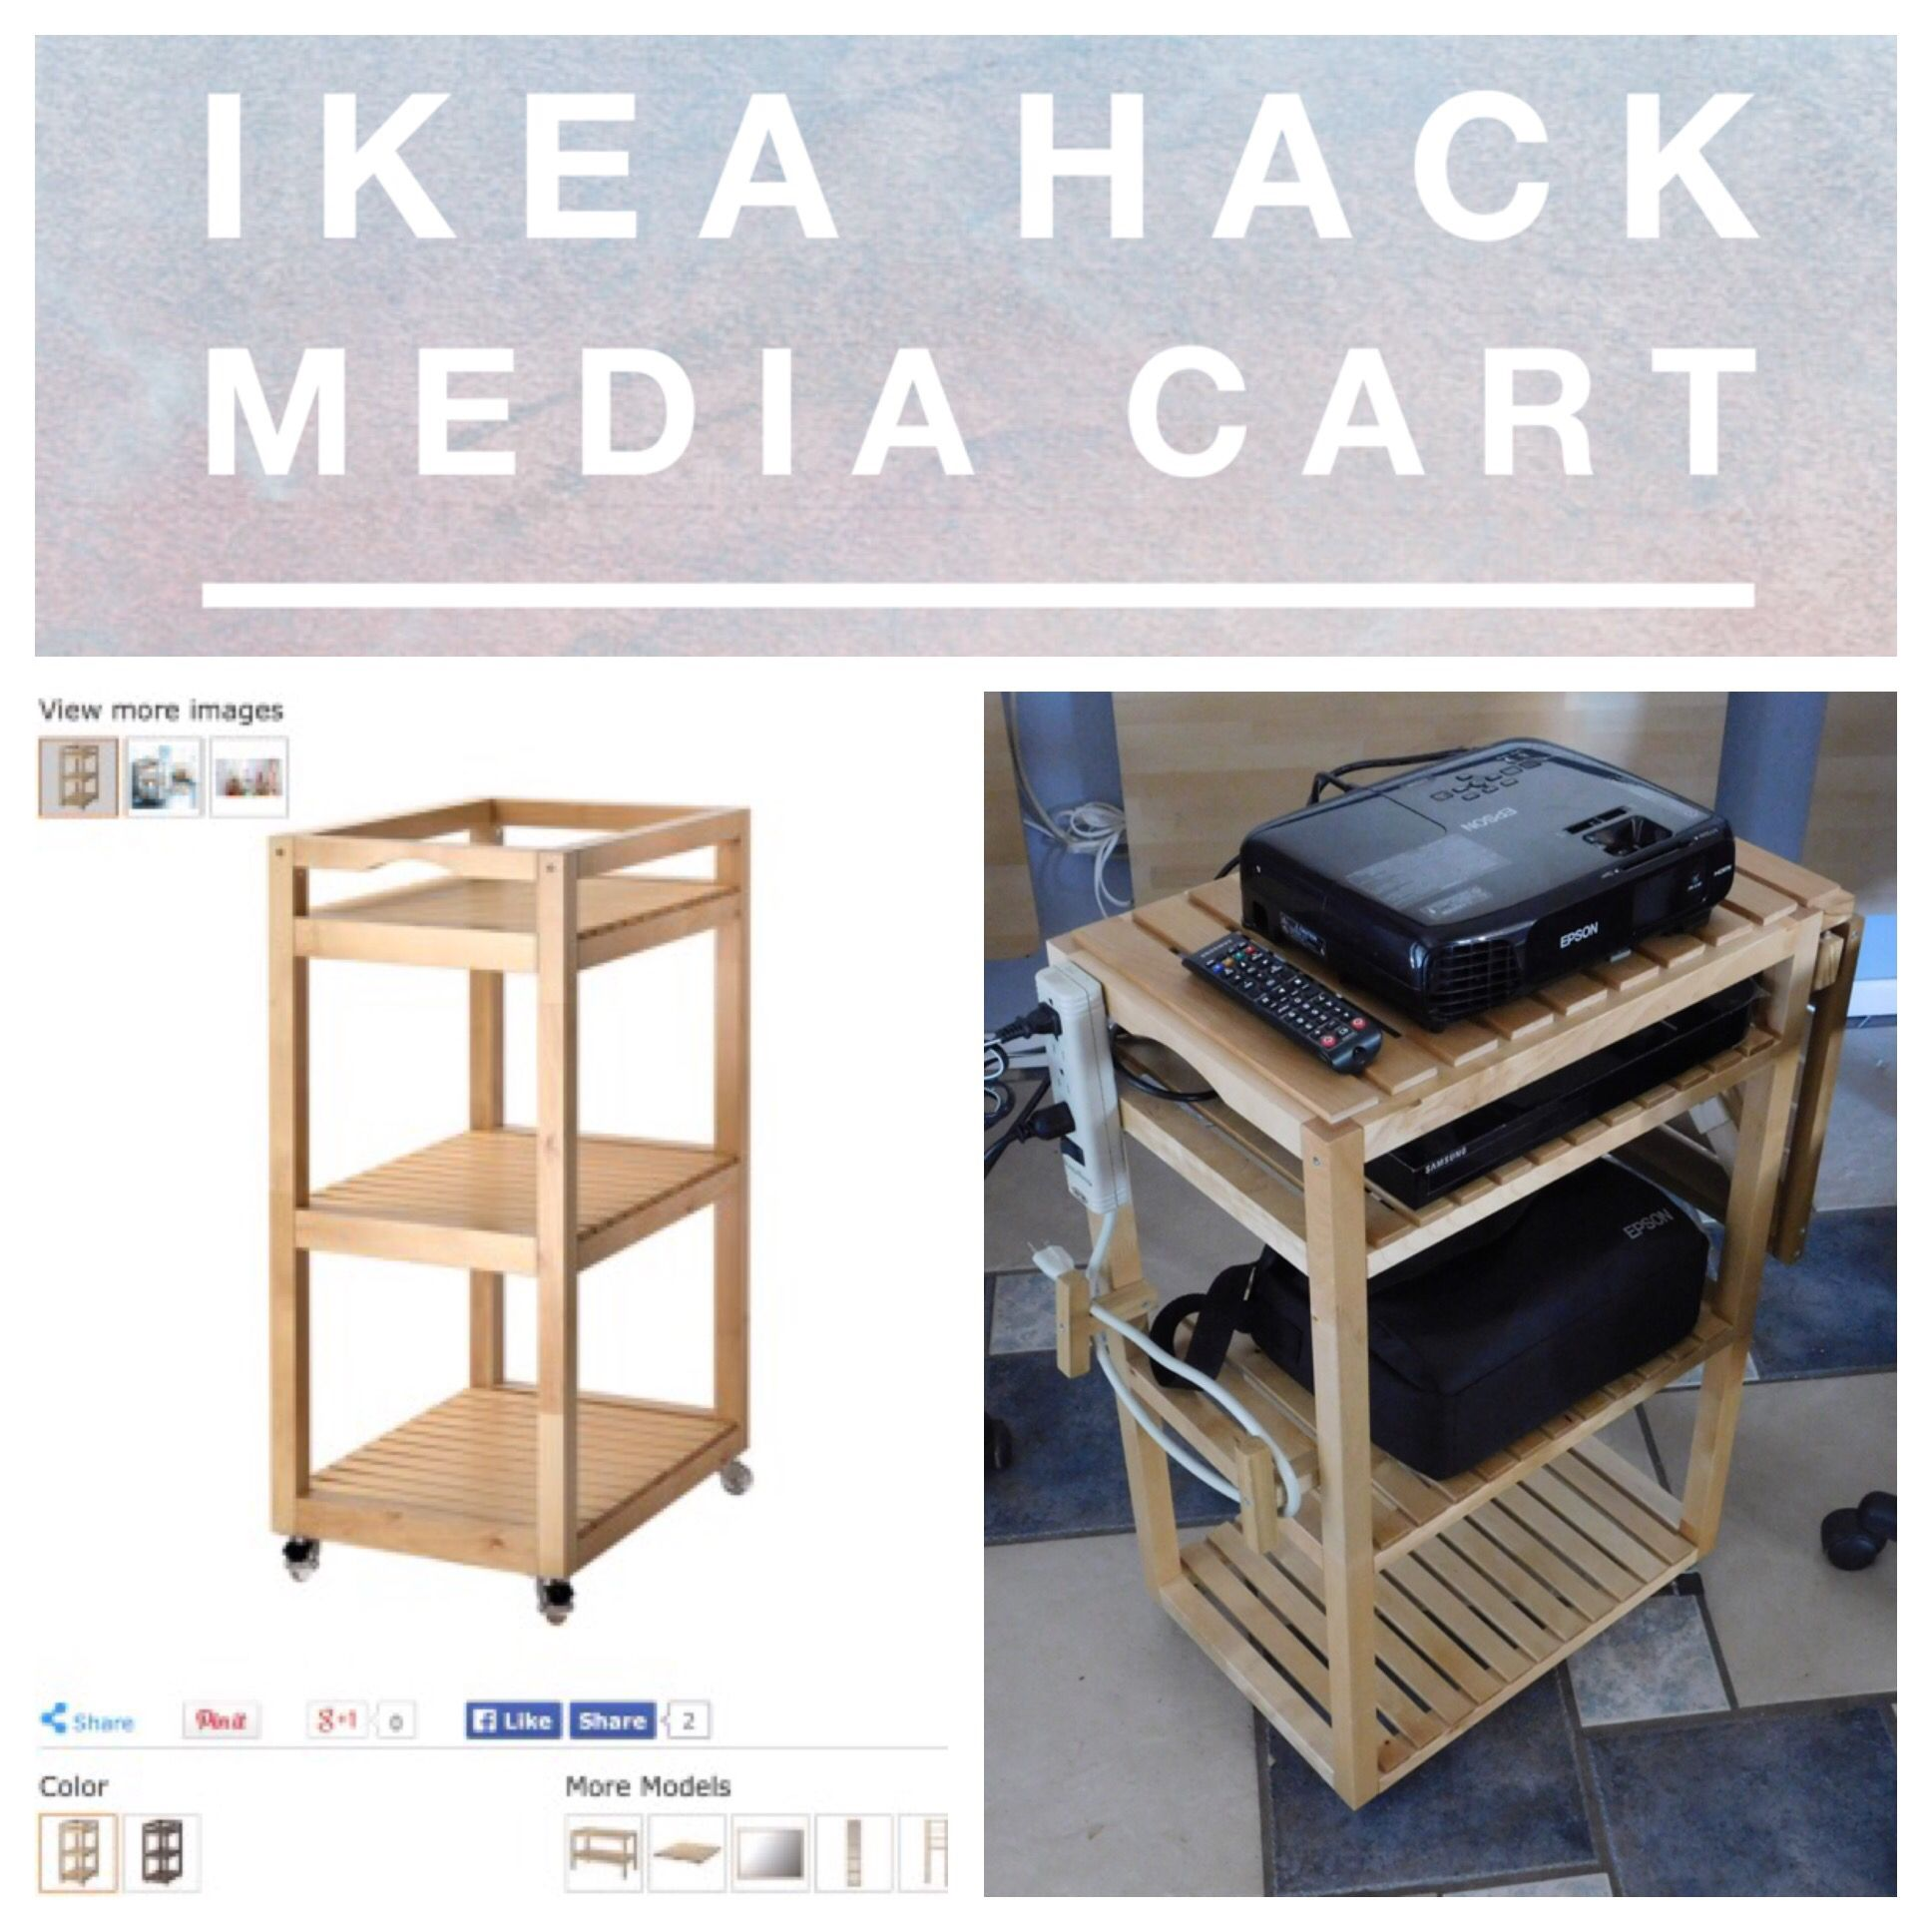 Molger Ikea Create A Media Cart From A Molger Birch Cart You Can Get